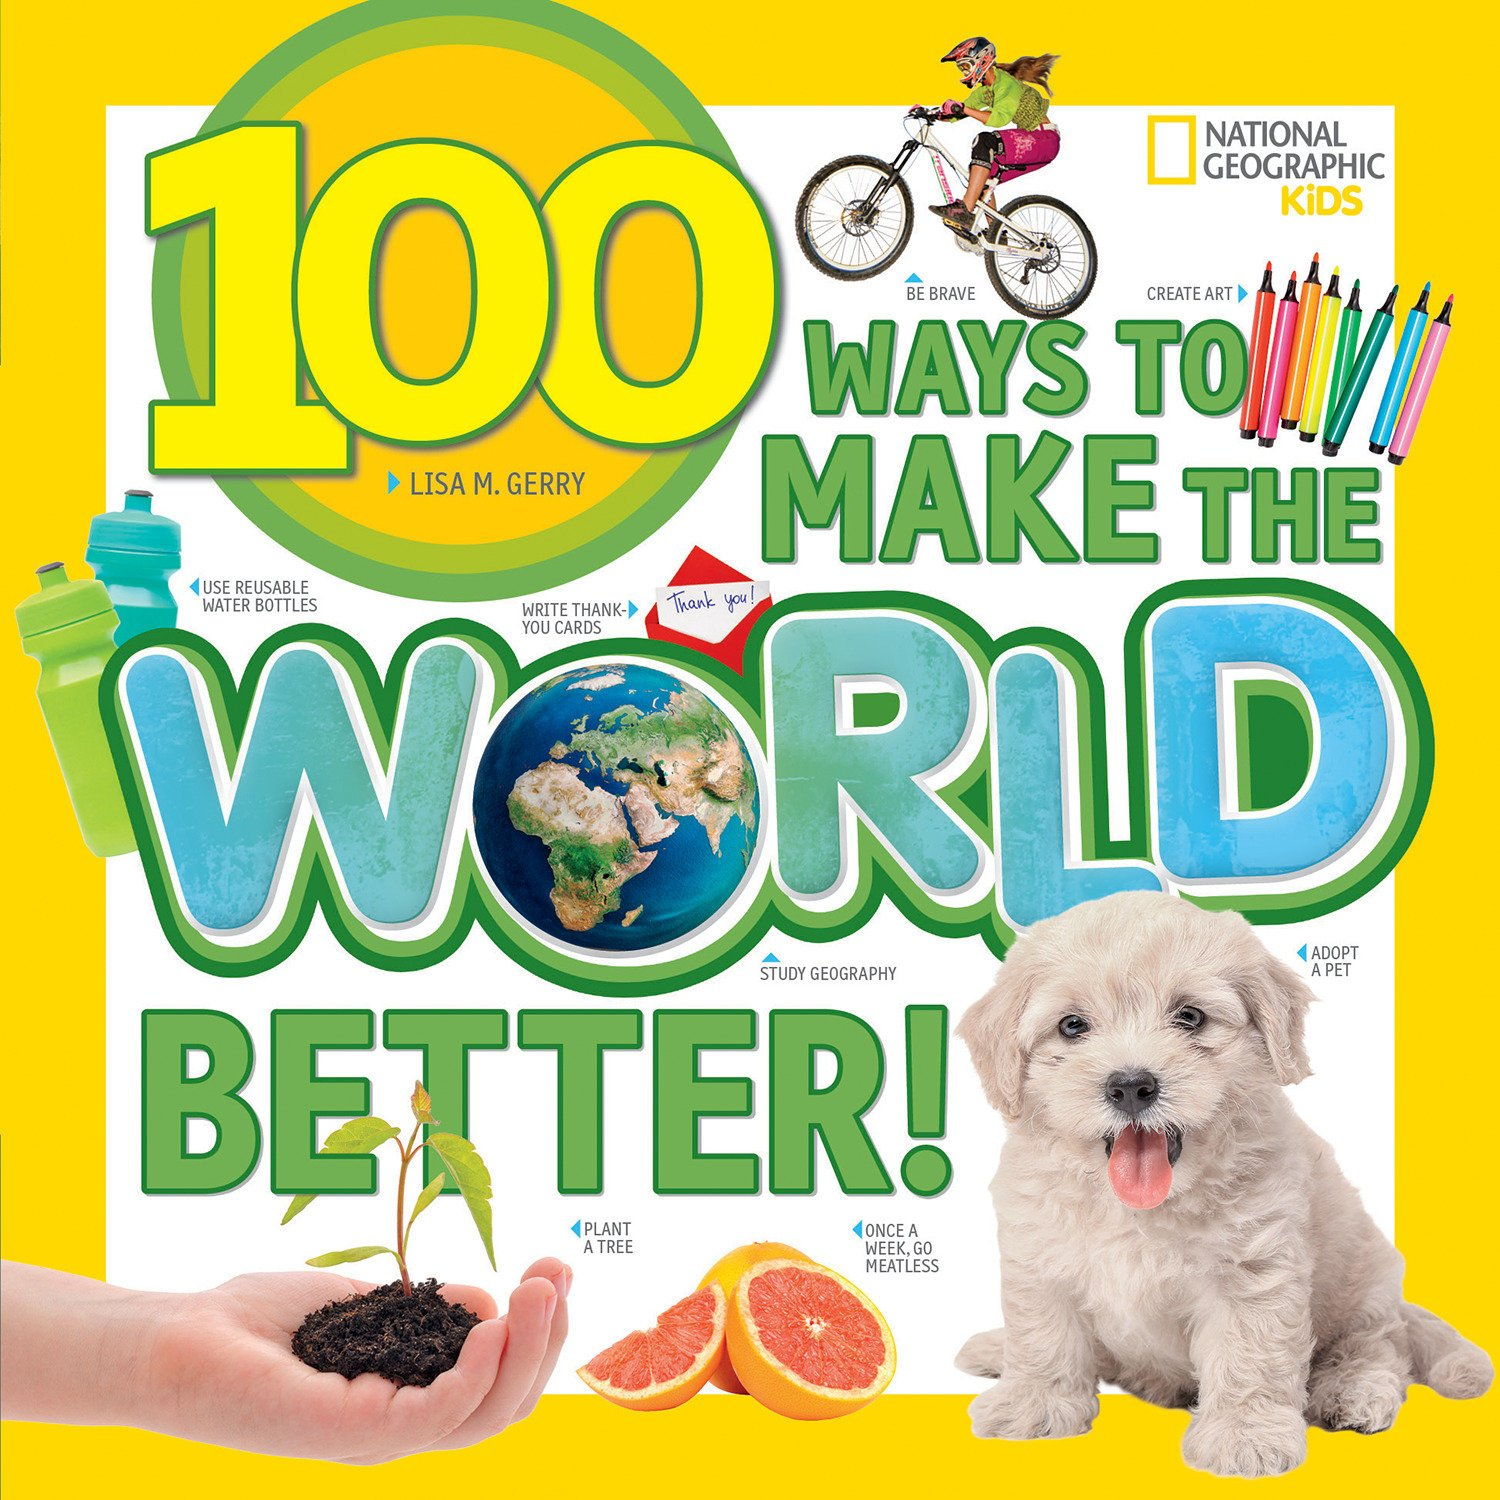 100 Ways to Make the World Better!: Lisa M. Gerry: 9781426329982:  Amazon.com: Books